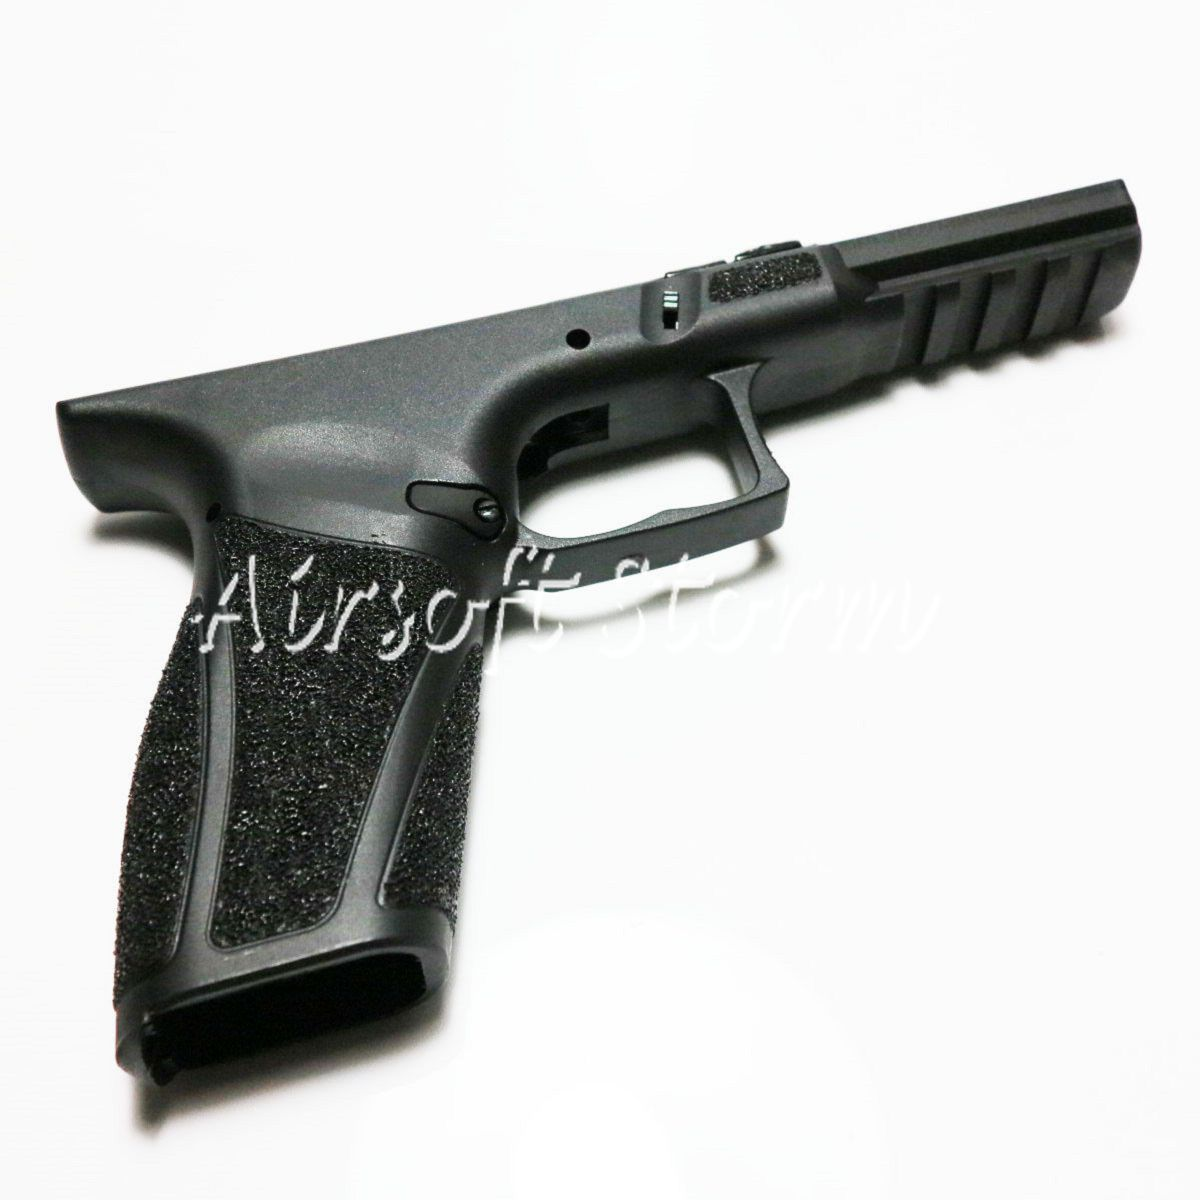 AEG Gear APS AC024S GBB Polymer Fiber Body Lower Frame Stippling For ACP A CAP Pistol Black